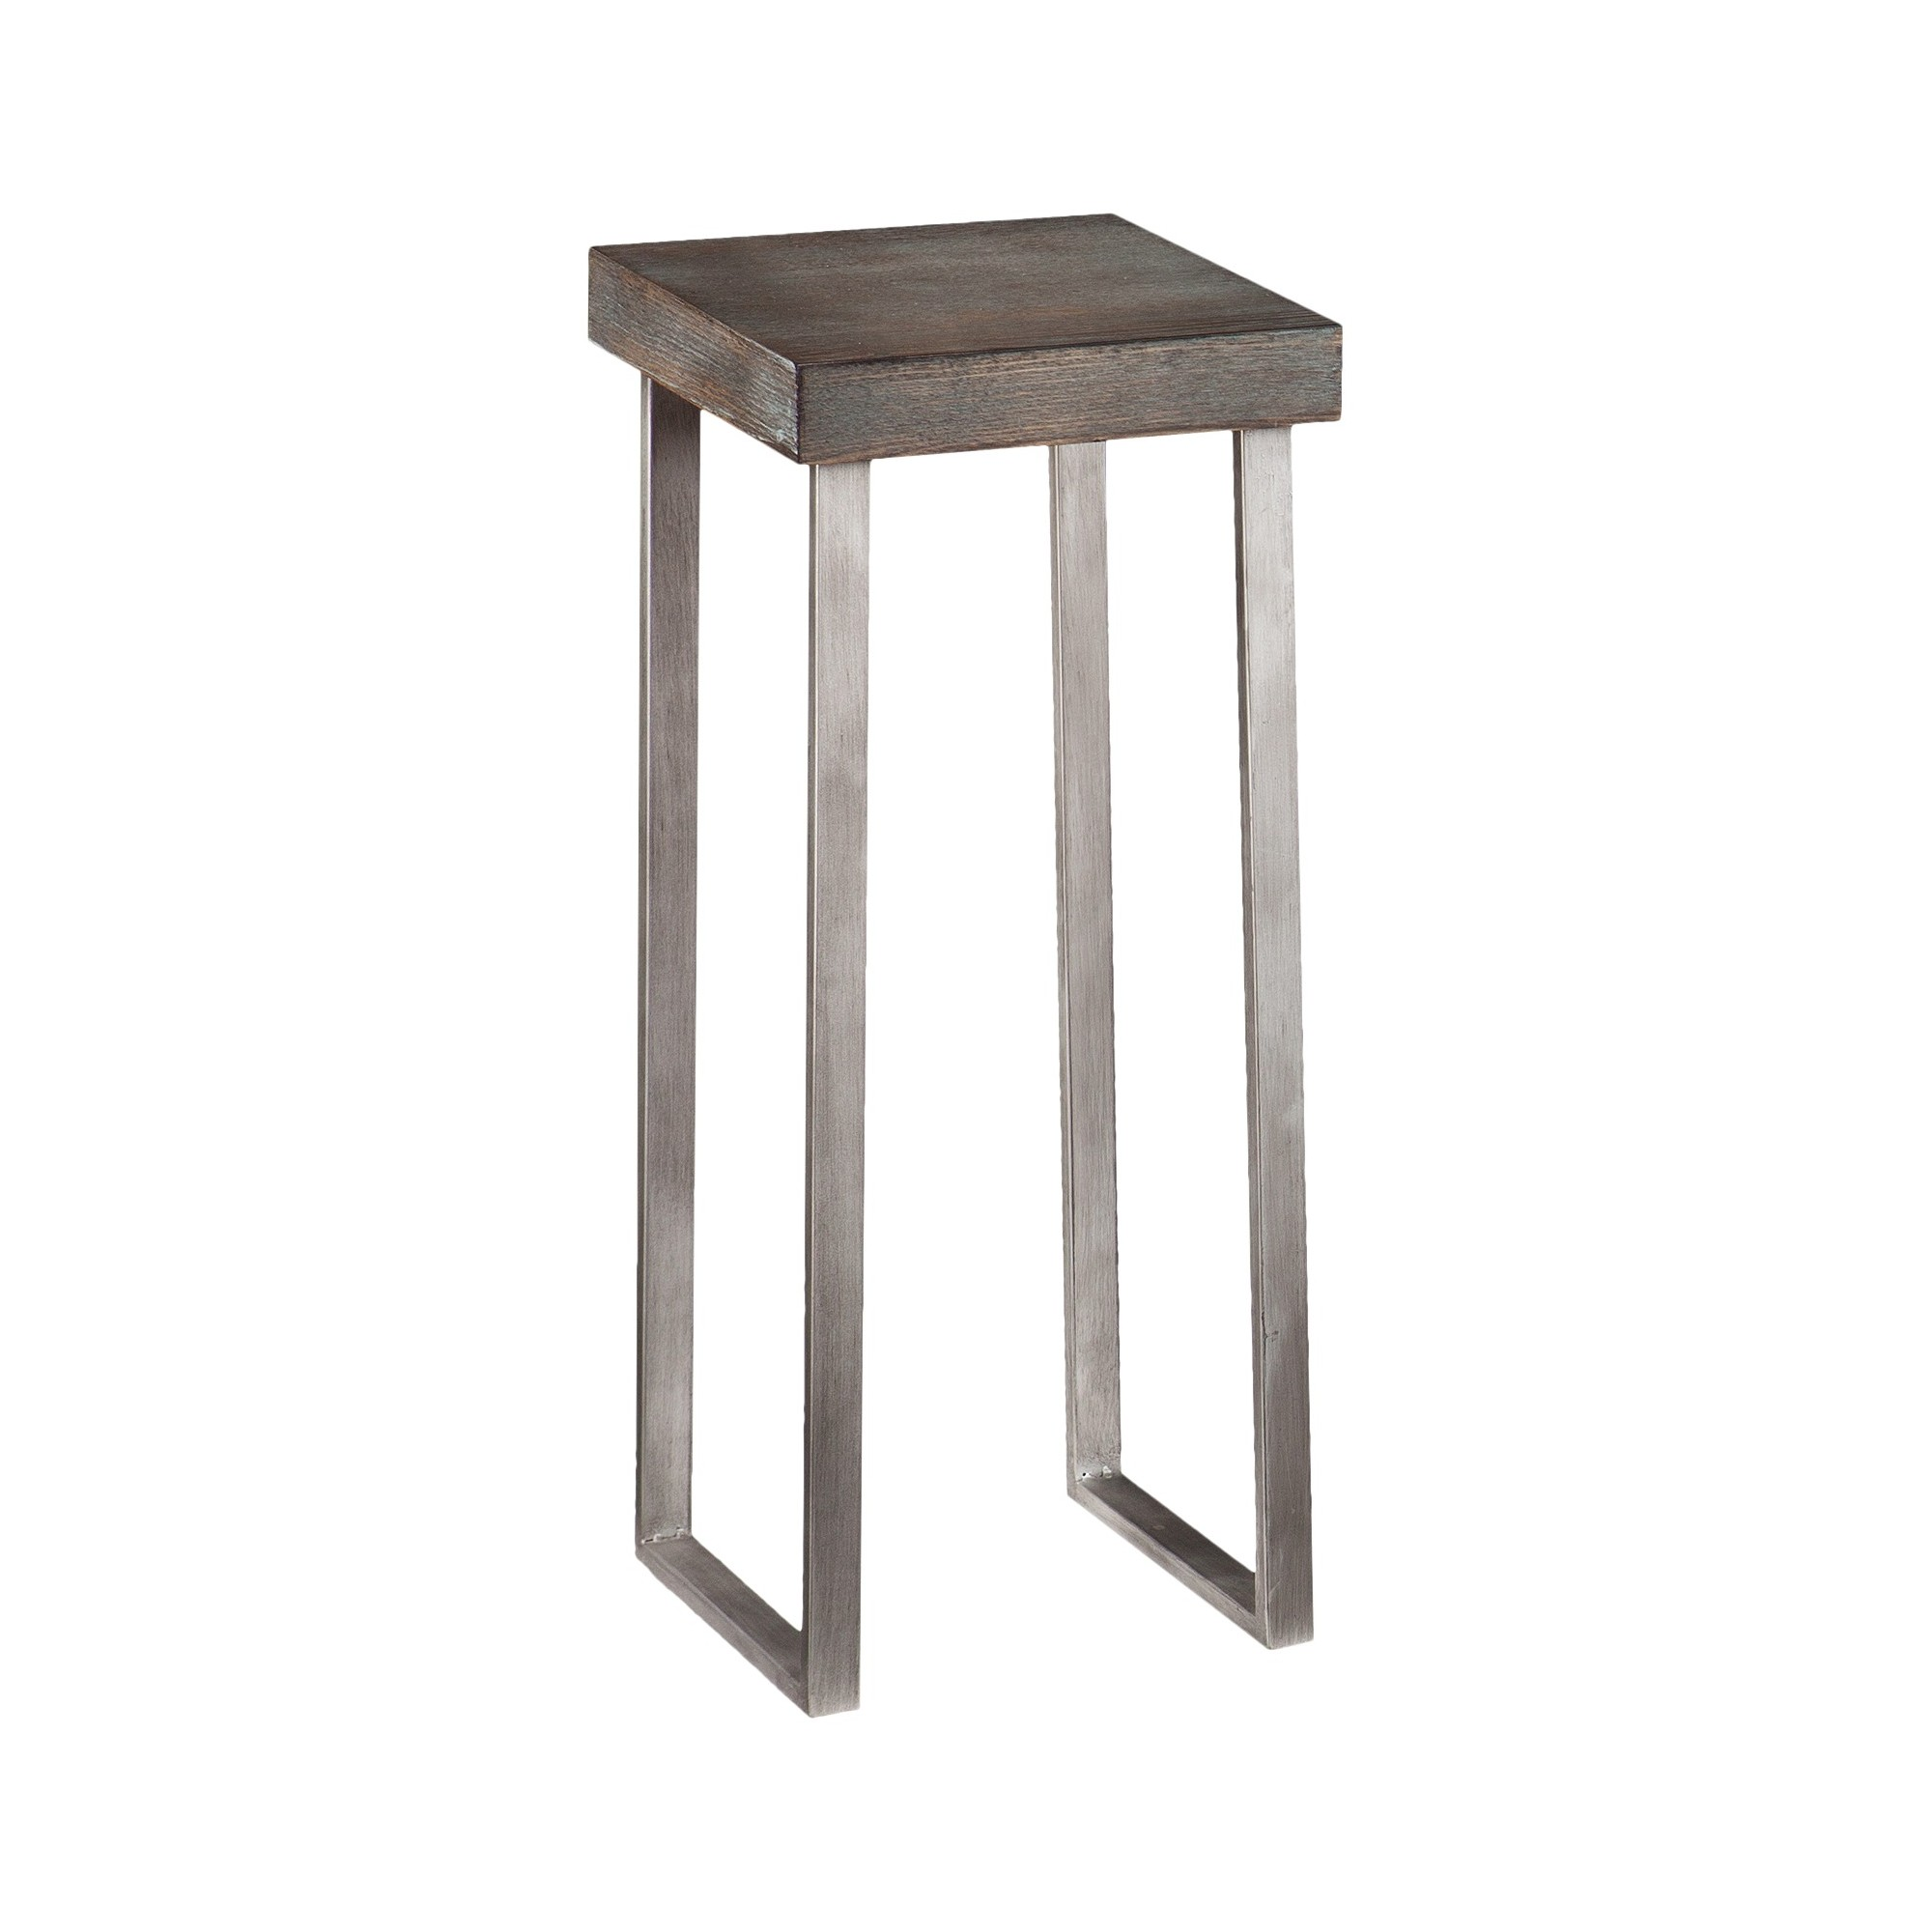 porch den alamo heights cloverleaf wood curved leg end mixed material accent table aiden lane silver marble and chrome coffee uma ikea garden furniture sets ethan allen round